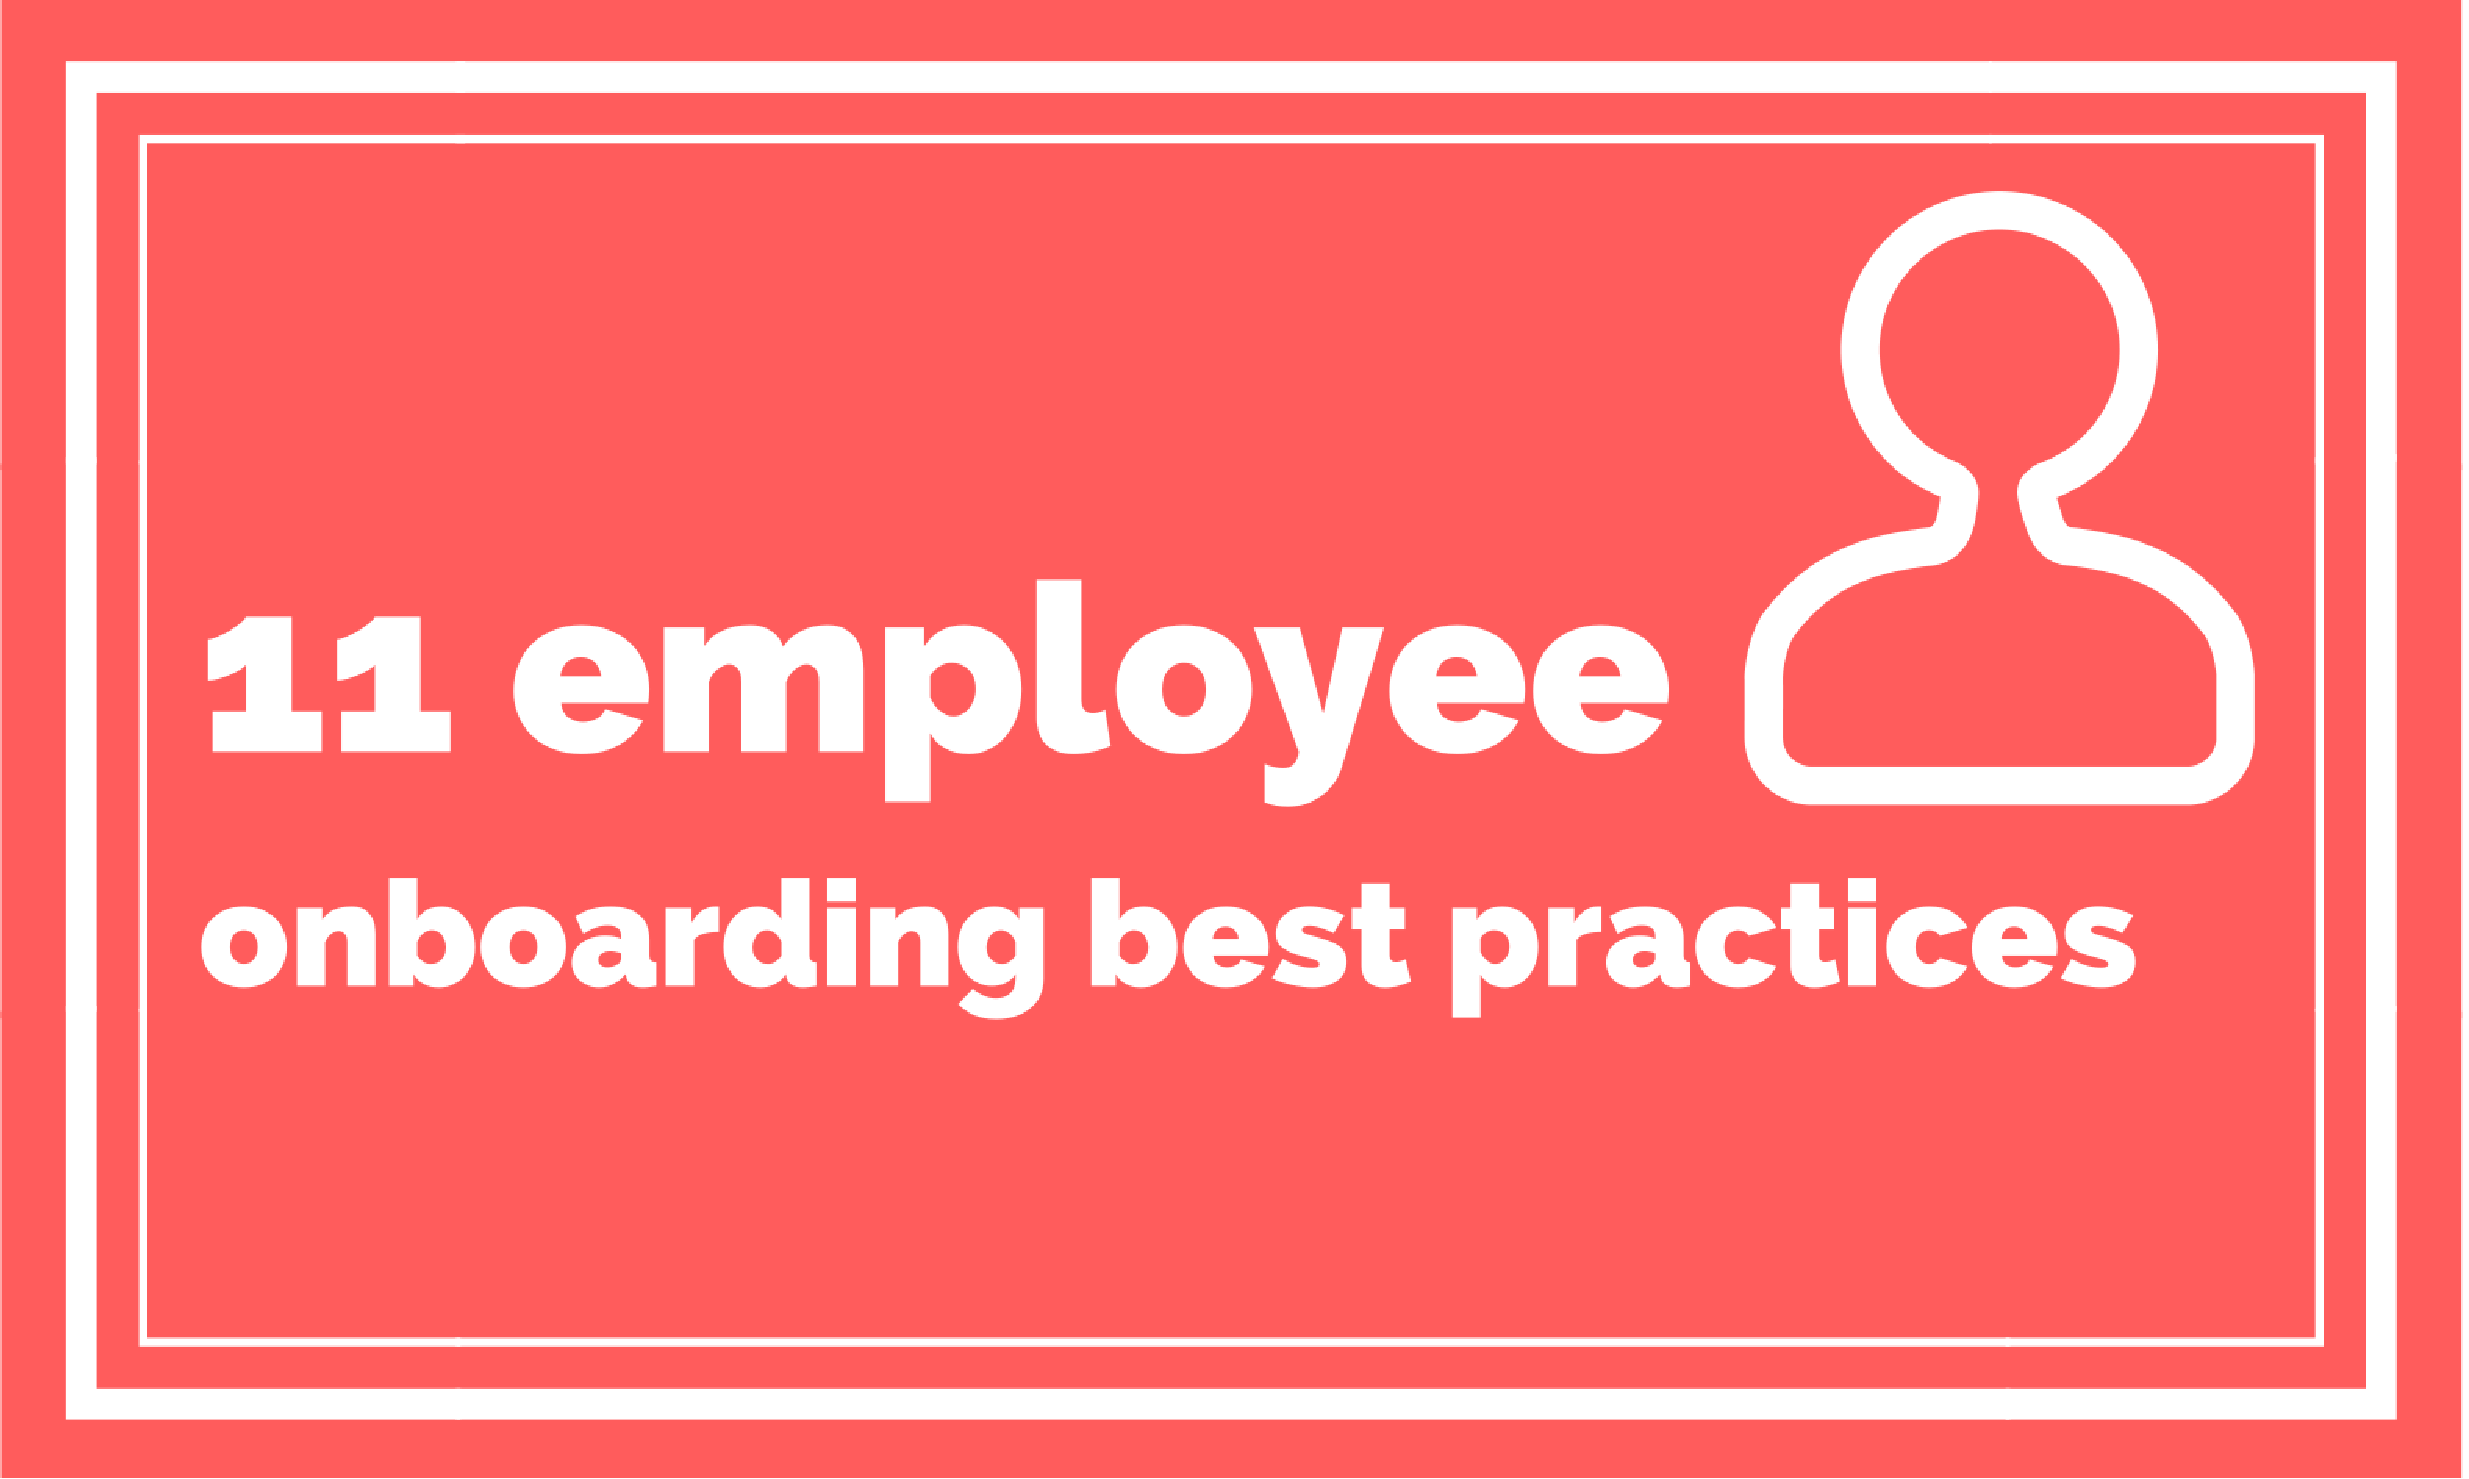 11 Employee Onboarding Best Practices